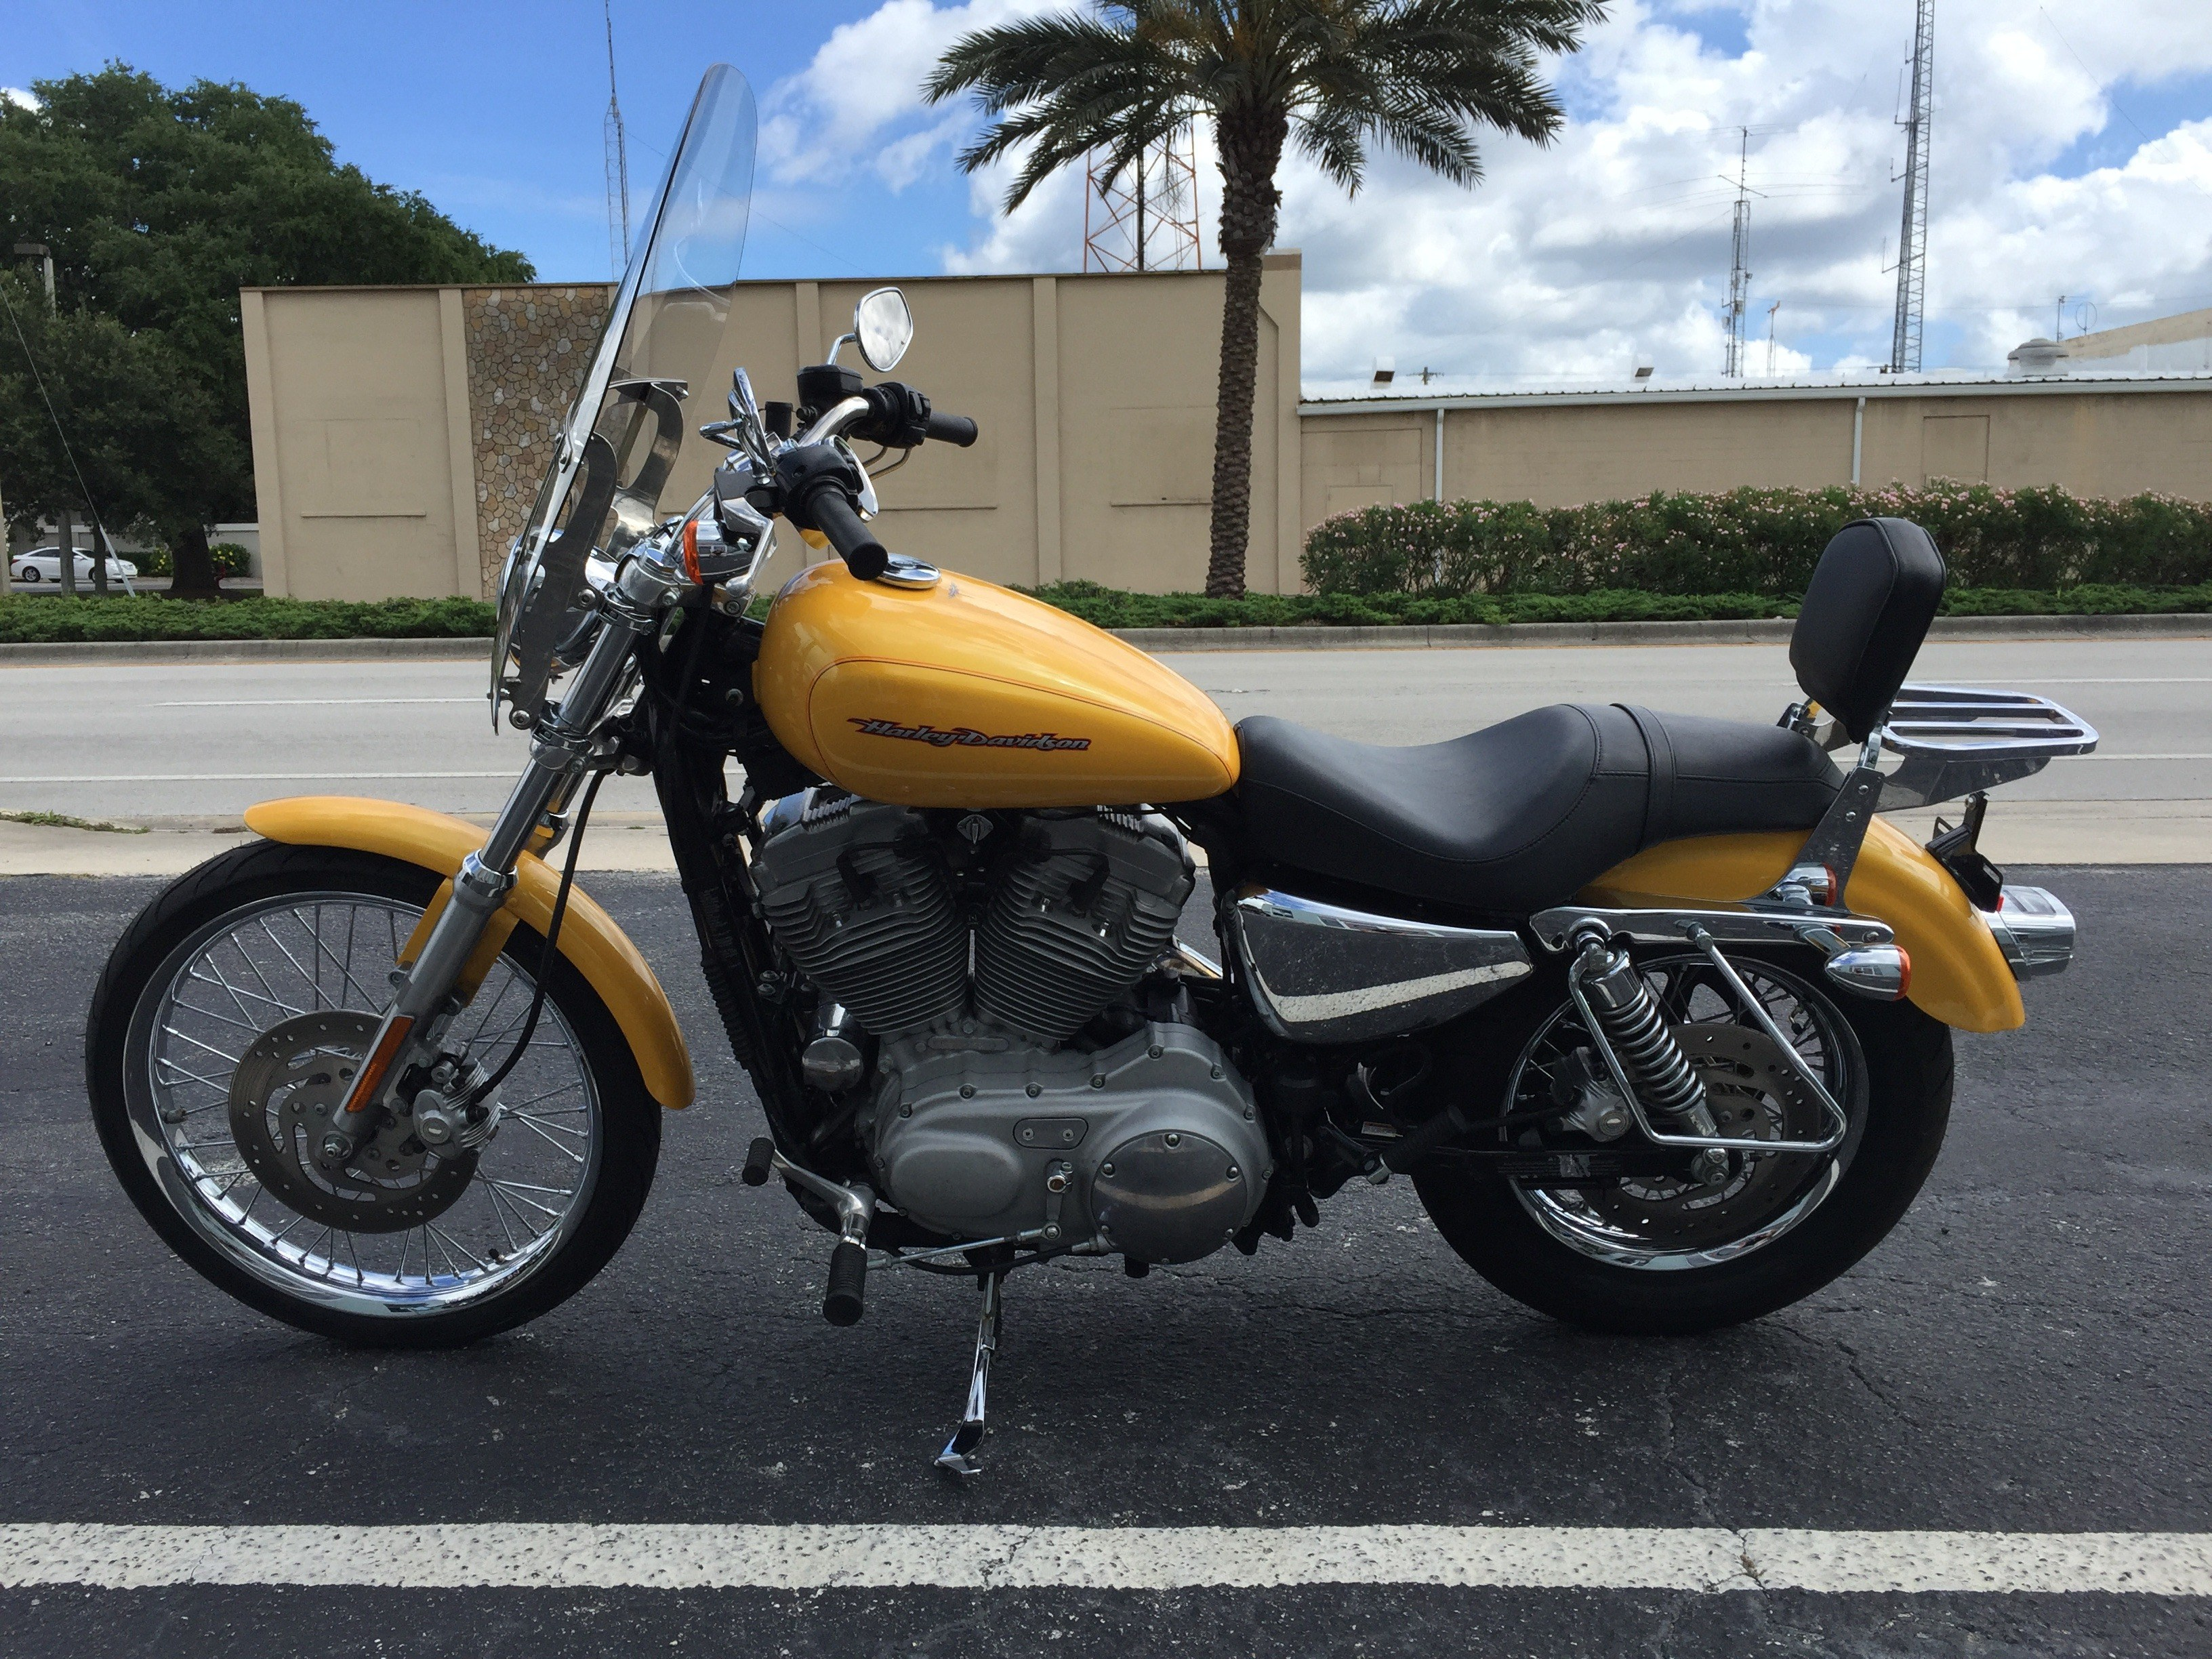 2005 Harley-Davidson Sportster® XL 883C in Cocoa, Florida - Photo 8